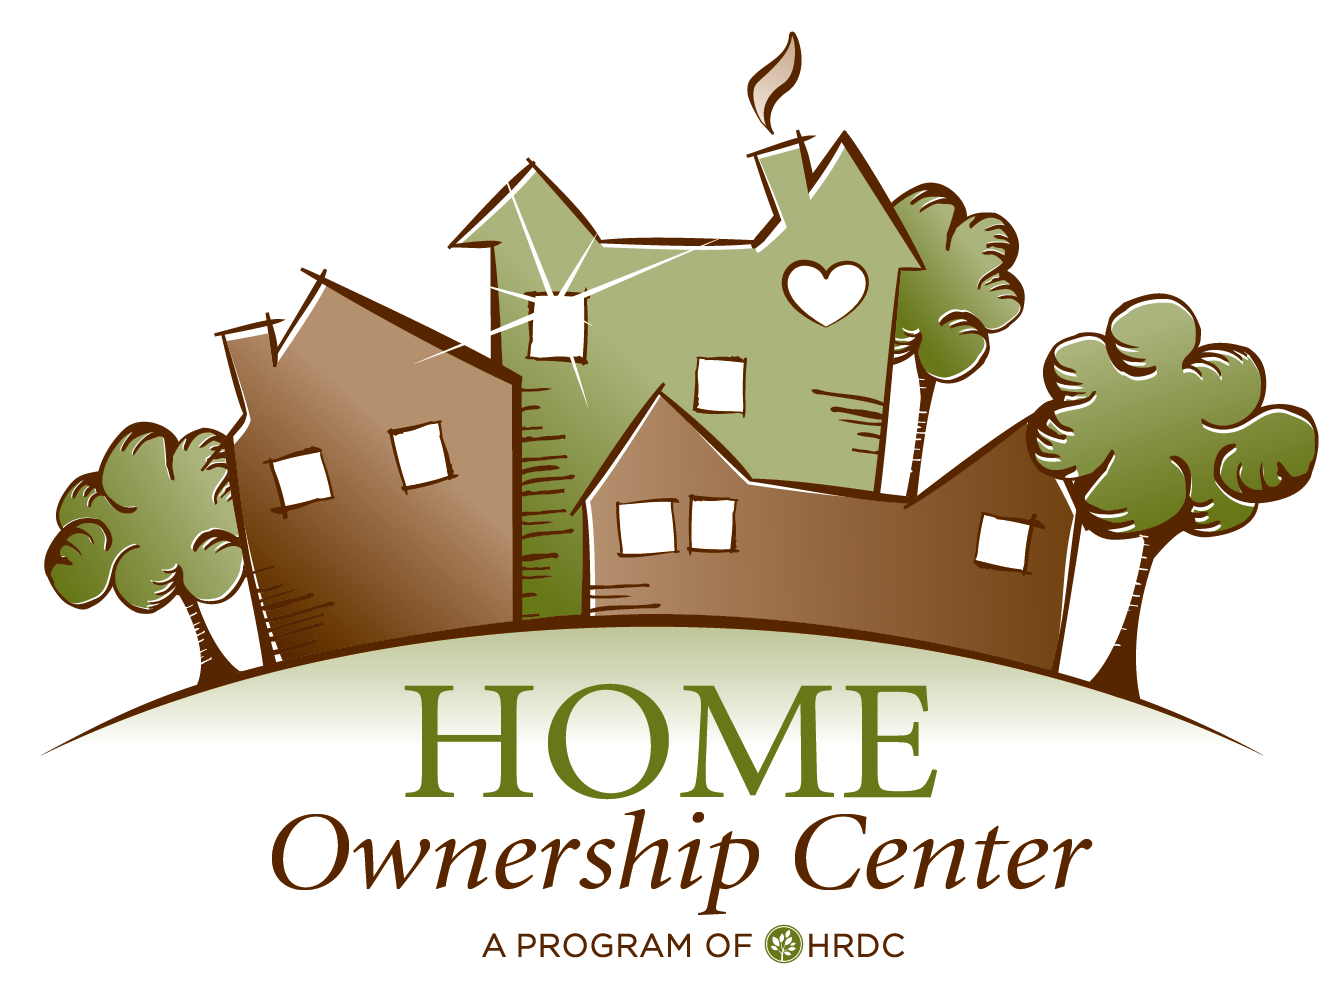 HomeOwnershipCenter_Color HRDC IX.png